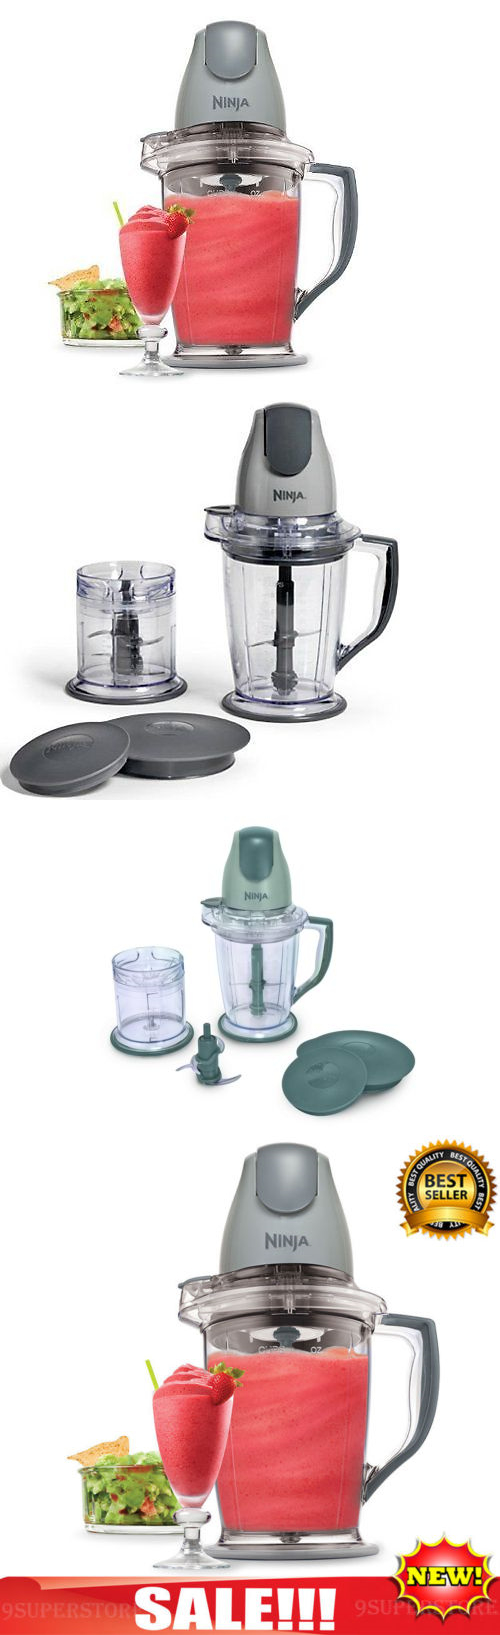 Uncategorized David Jones Kitchen Appliances small kitchen appliances drink maker food processor david kitchen